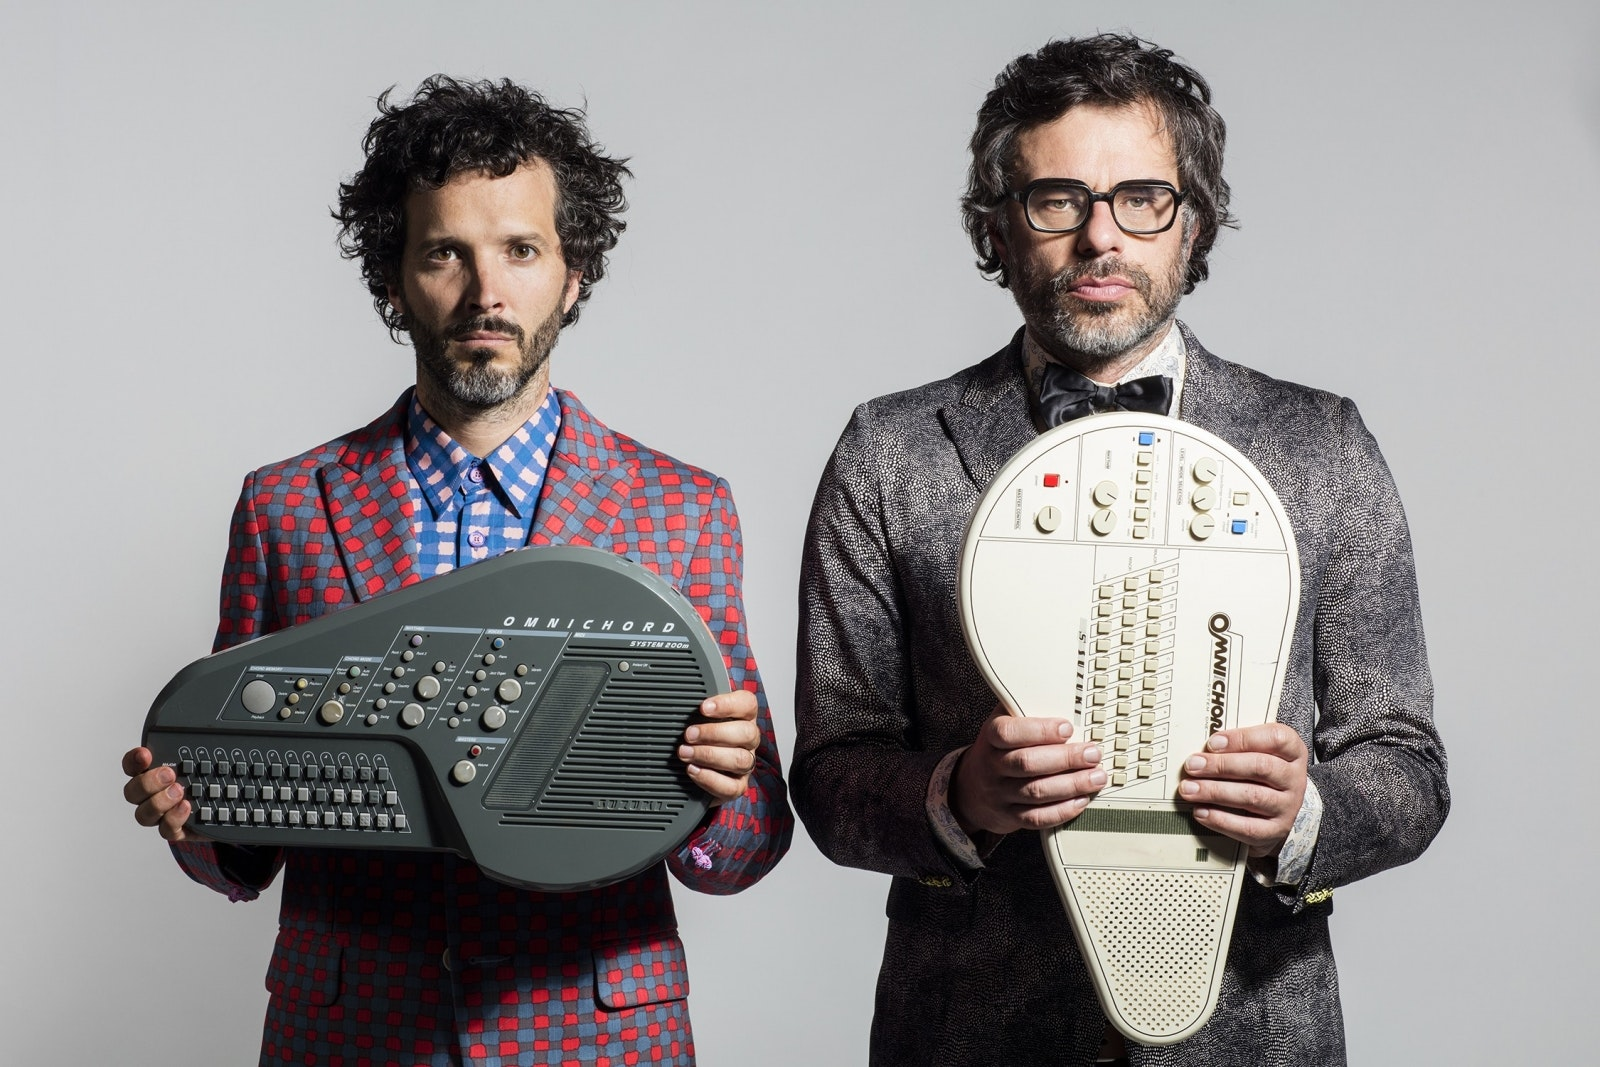 Flight of the Conchords to return to TV with an hour-long special